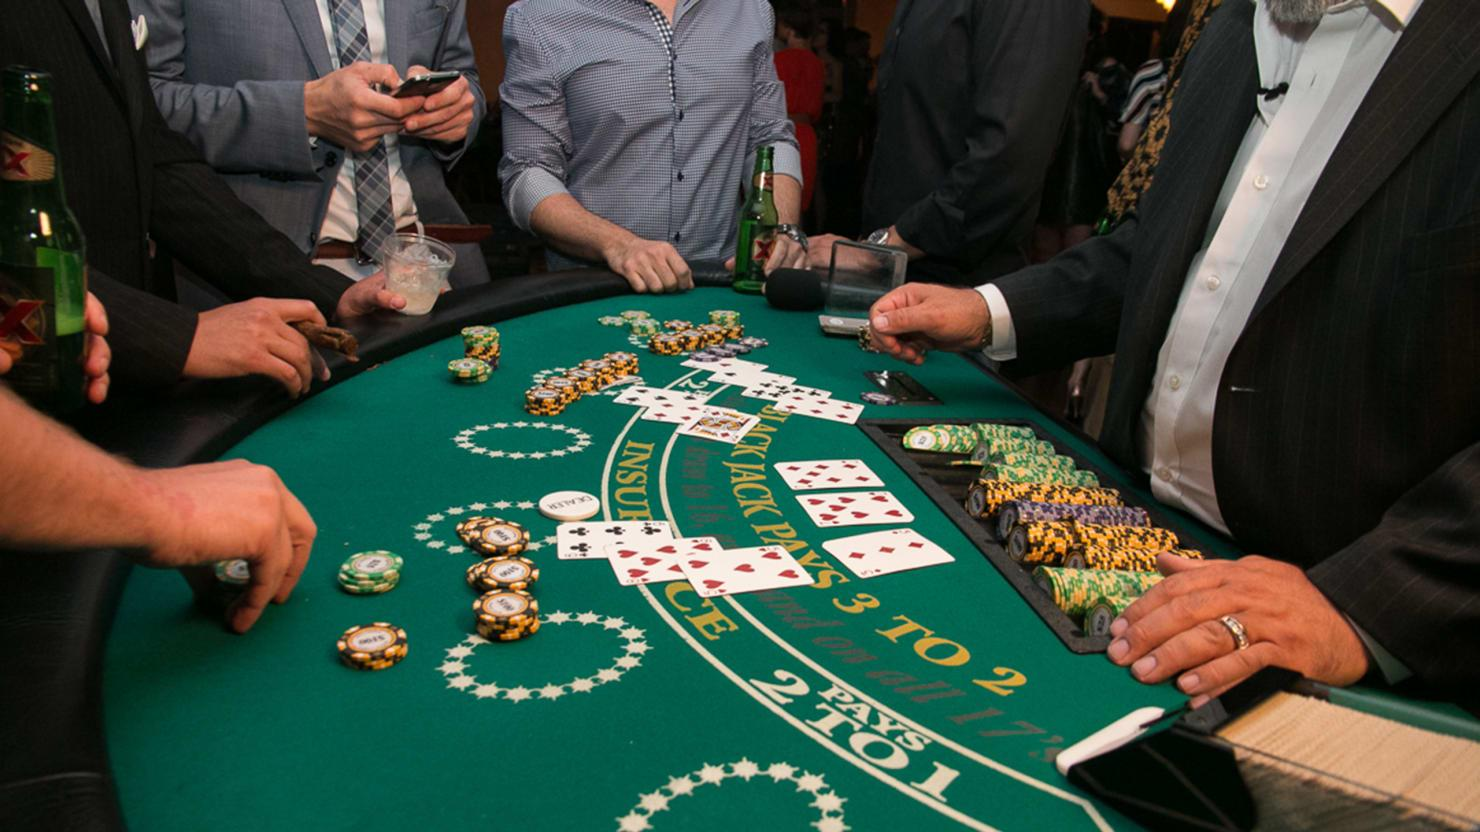 Is it gambling or a game? – Simulated gambling games